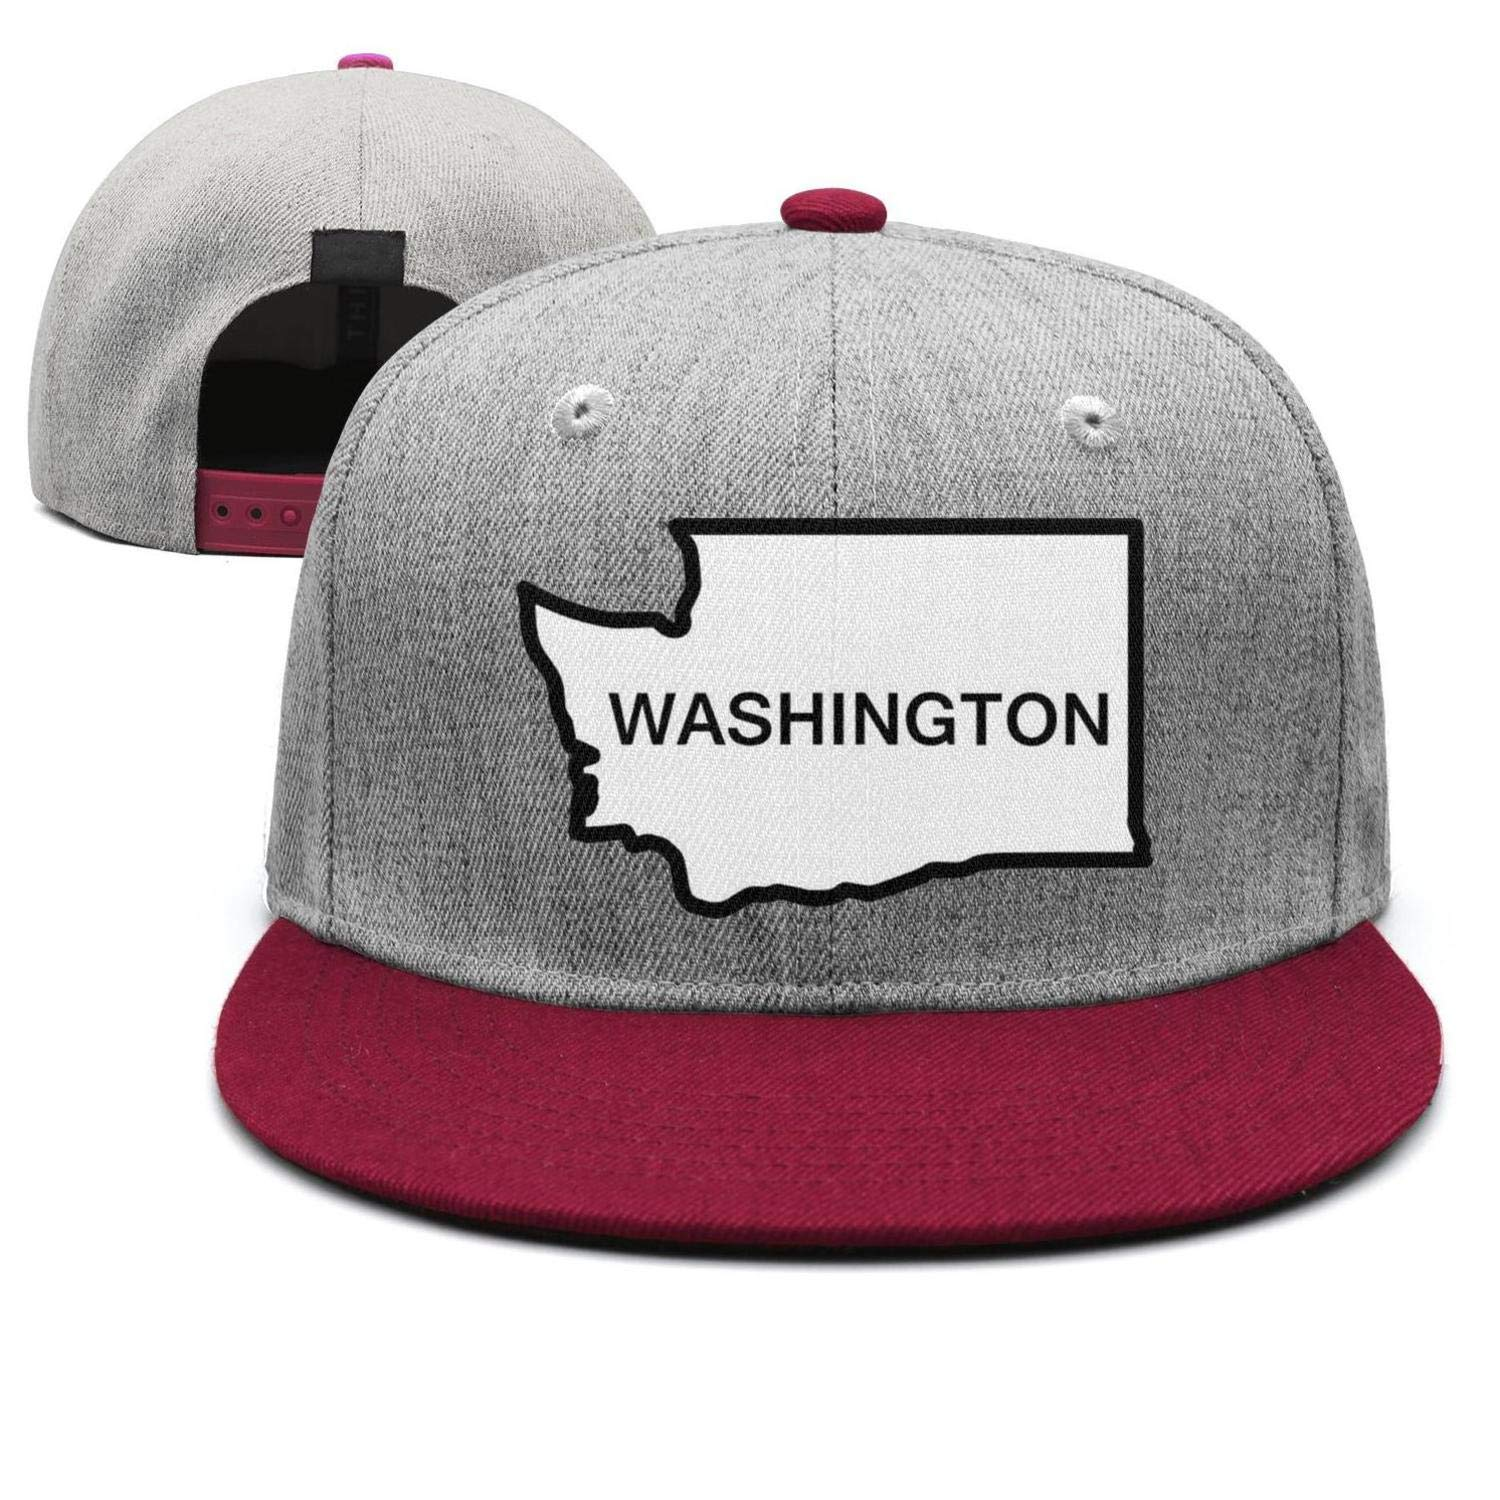 Cotton Casual Trucker hat Adjustable Fits Mesh Baseball Caps for Man and Woman smsdpmc Washington-Funny-State